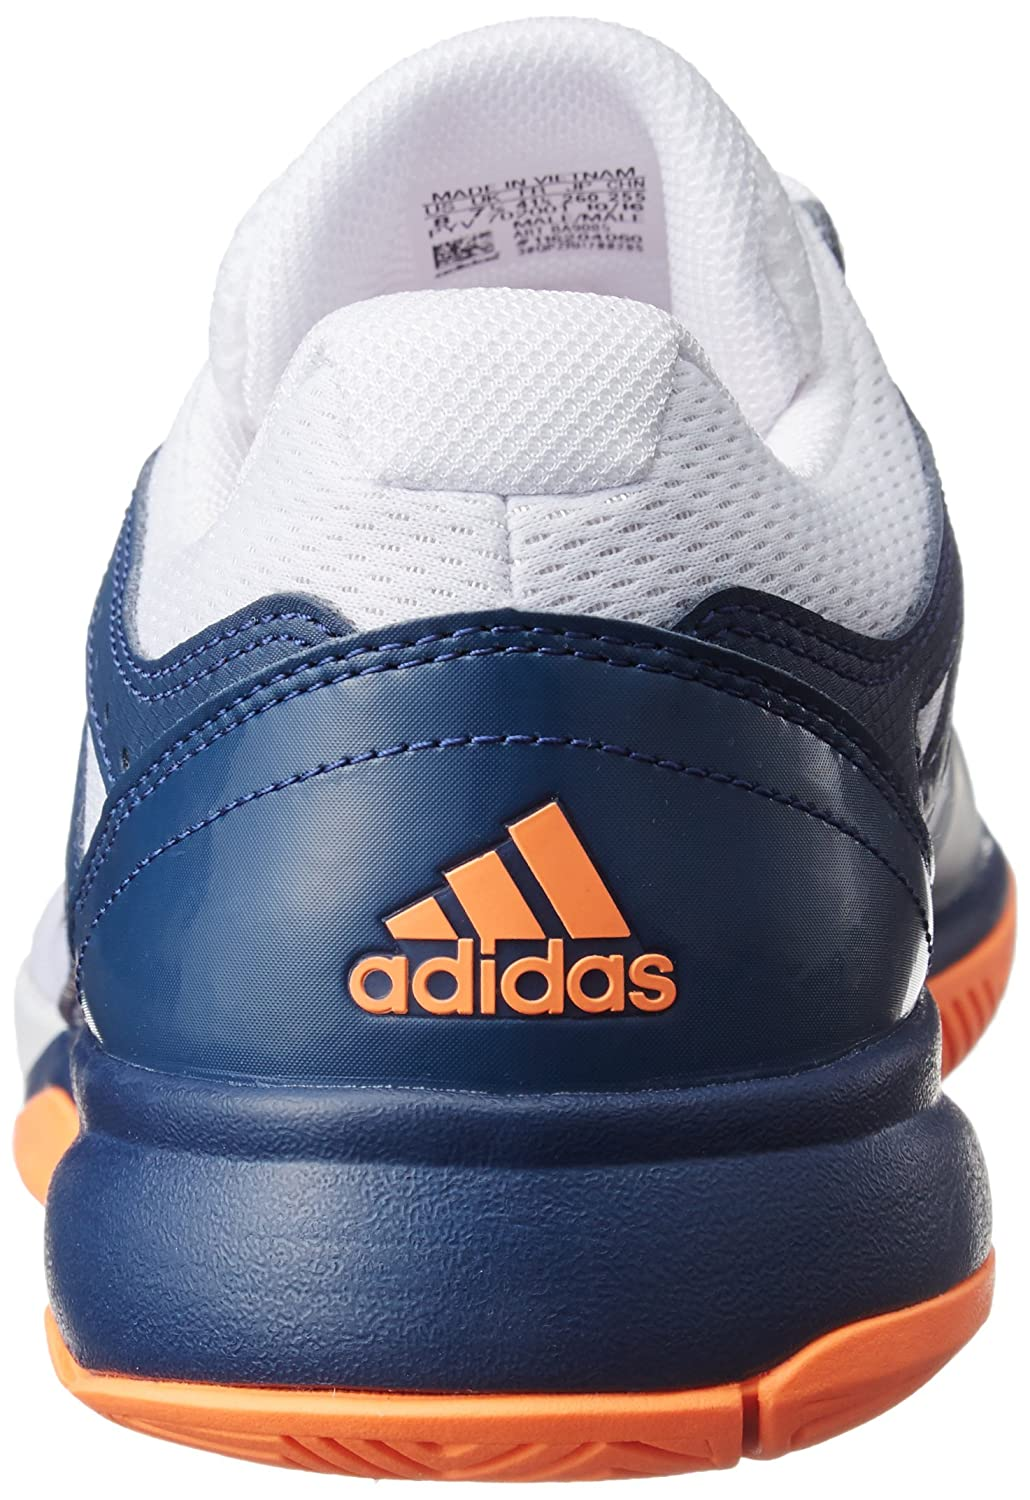 Adidas Adizero Zapatilla Indoor S - SS17 - 46: Amazon.es ...